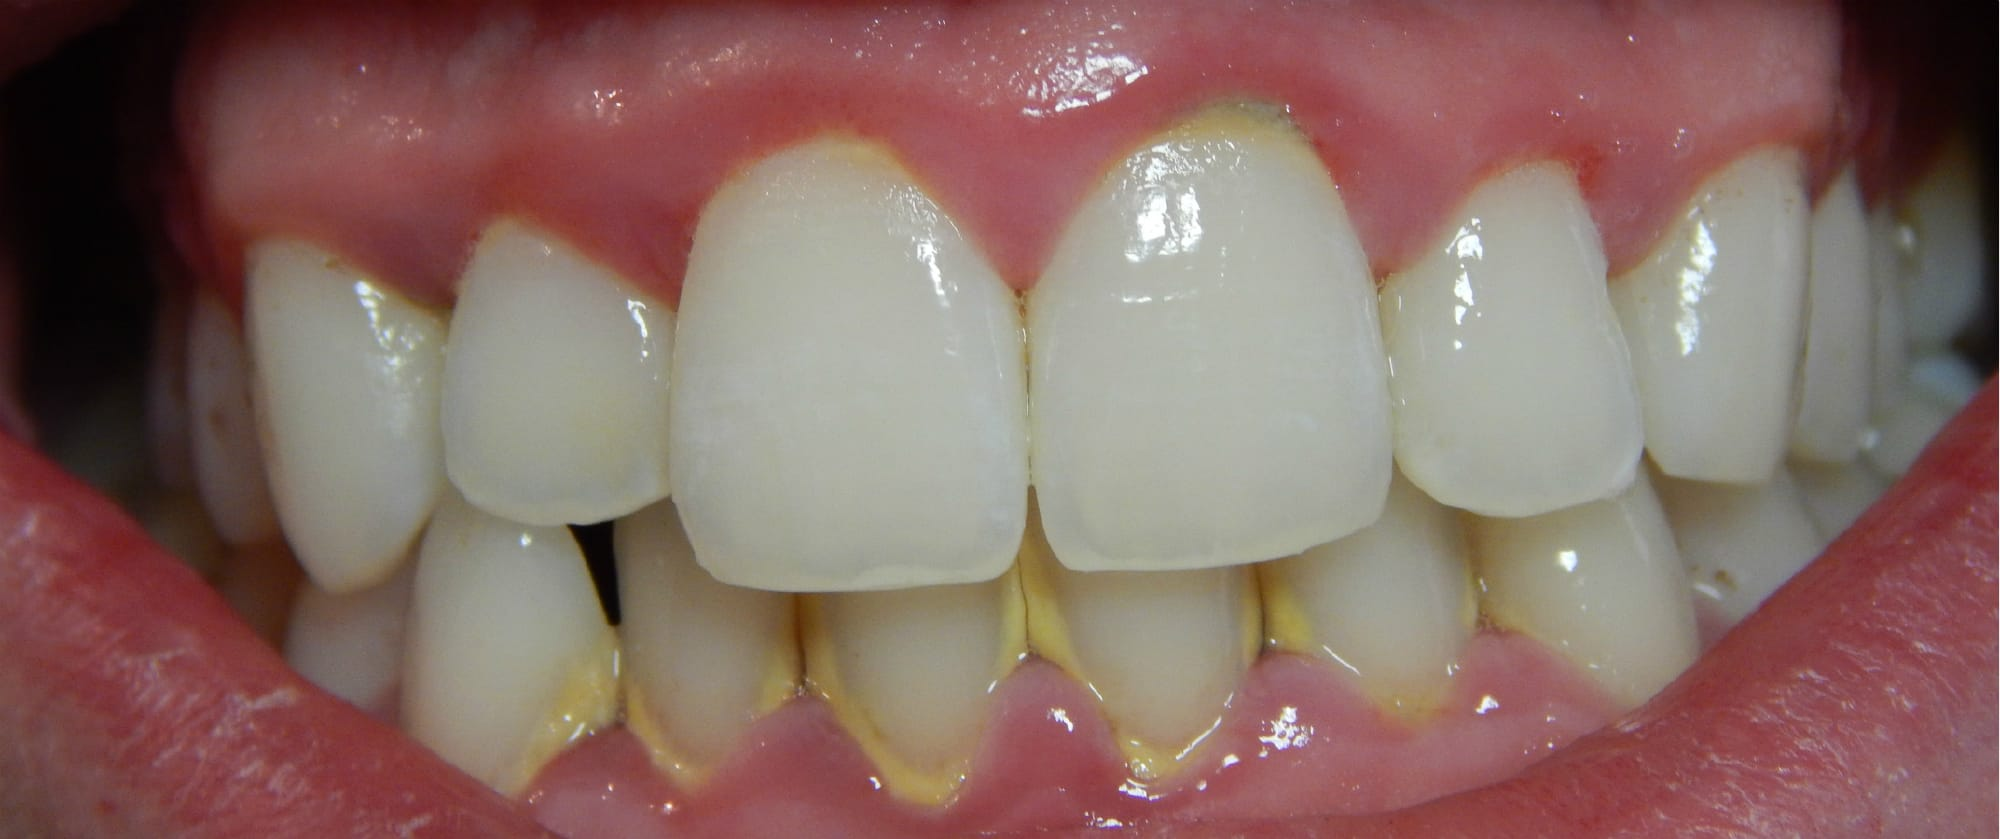 You Can Remove Tartar From Your Teeth With One Simple